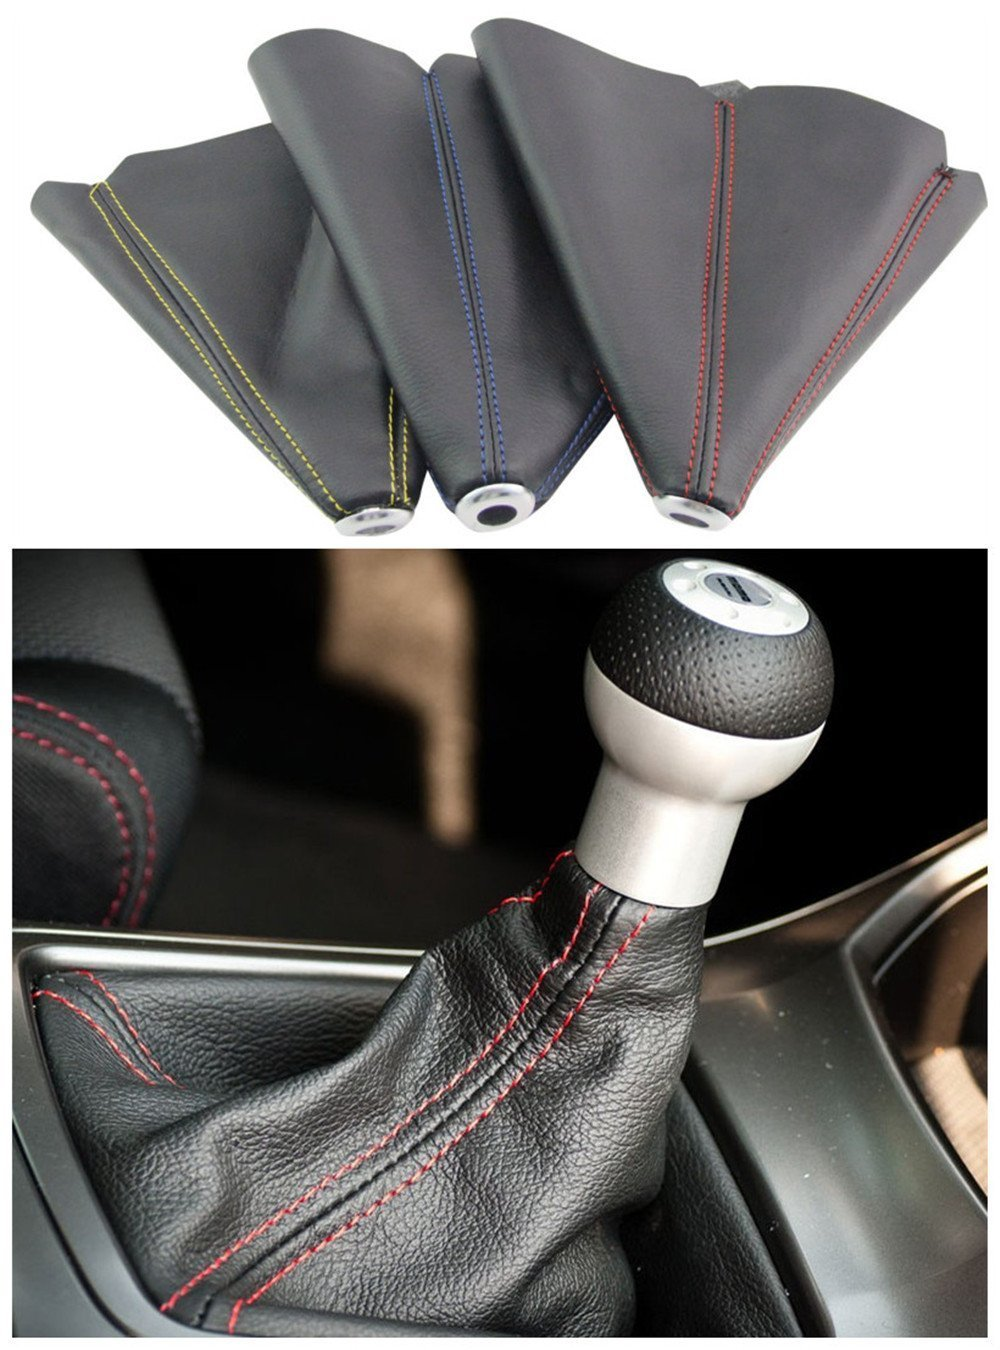 PVC Shift Boot for Manual Automatic Car/Auto Gear Shift Knob Cover MT/AT Universal Type(Red)